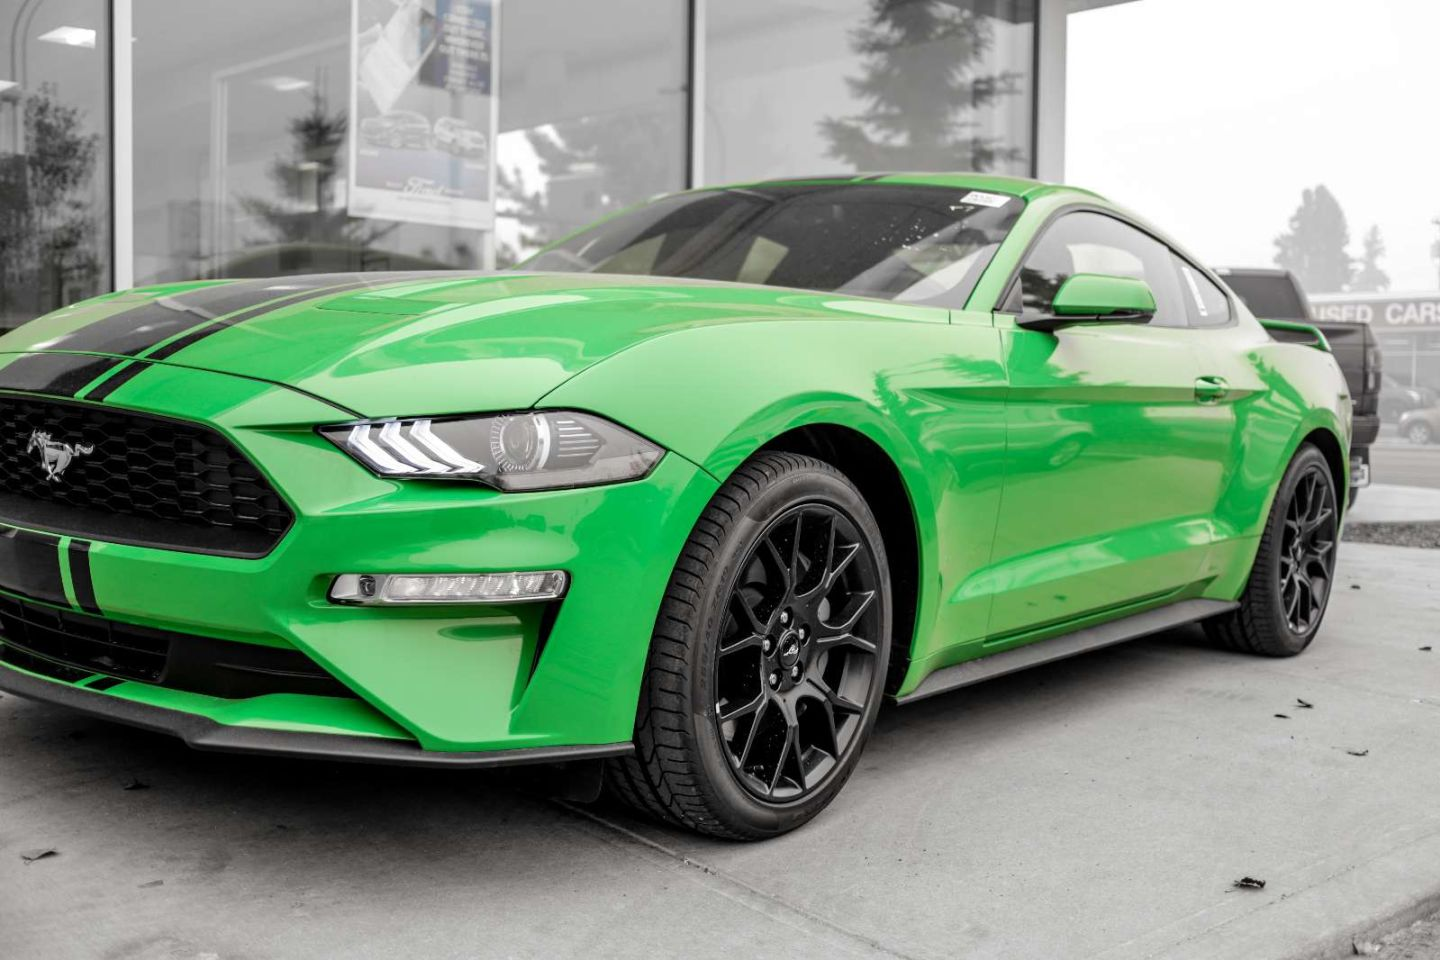 2019 Ford Mustang EcoBoost Premium for sale in Edmonton, Alberta